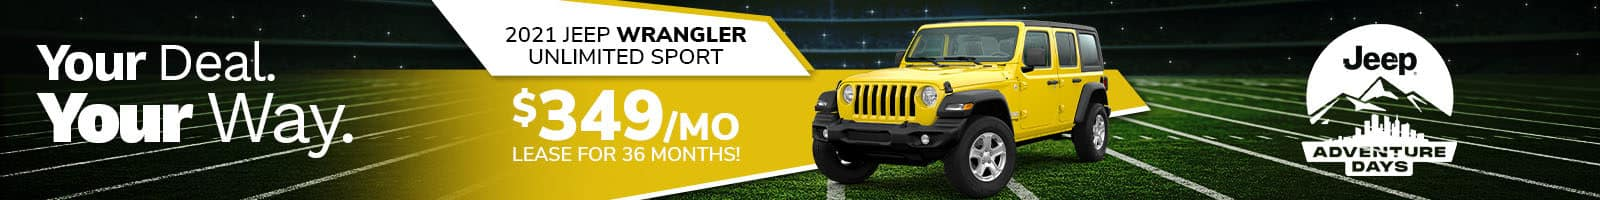 2021 Jeep Wrangler Lease offer near Indianapolis IN